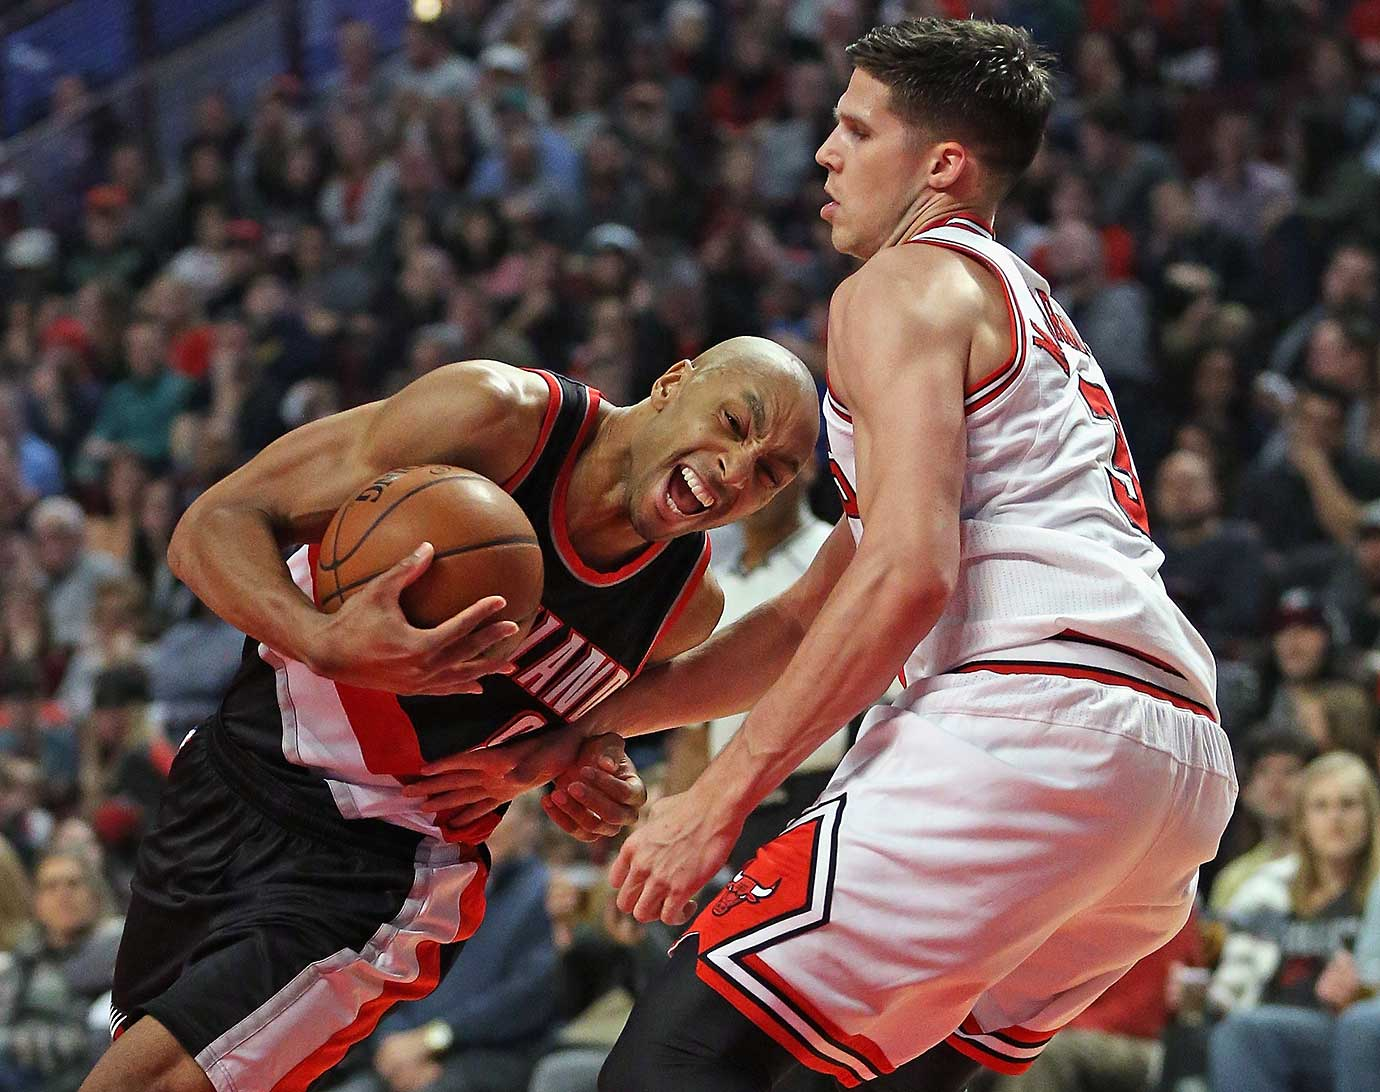 Damian Lillard of the Portland Trail Blazers drives against Doug McDermott of the Chicago Bulls.